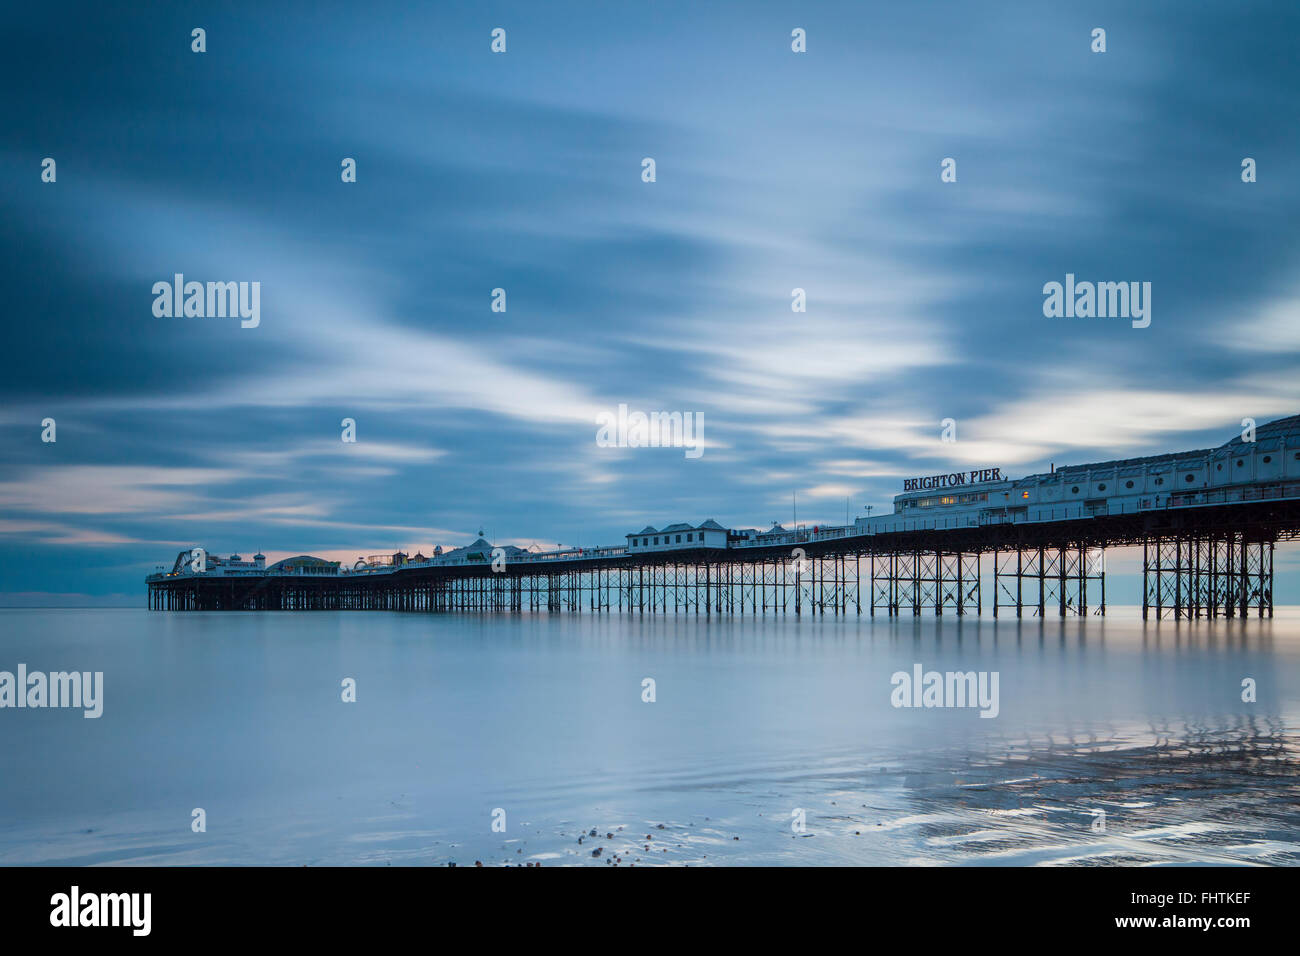 Evening at Brighton Pier, East Sussex, England. - Stock Image